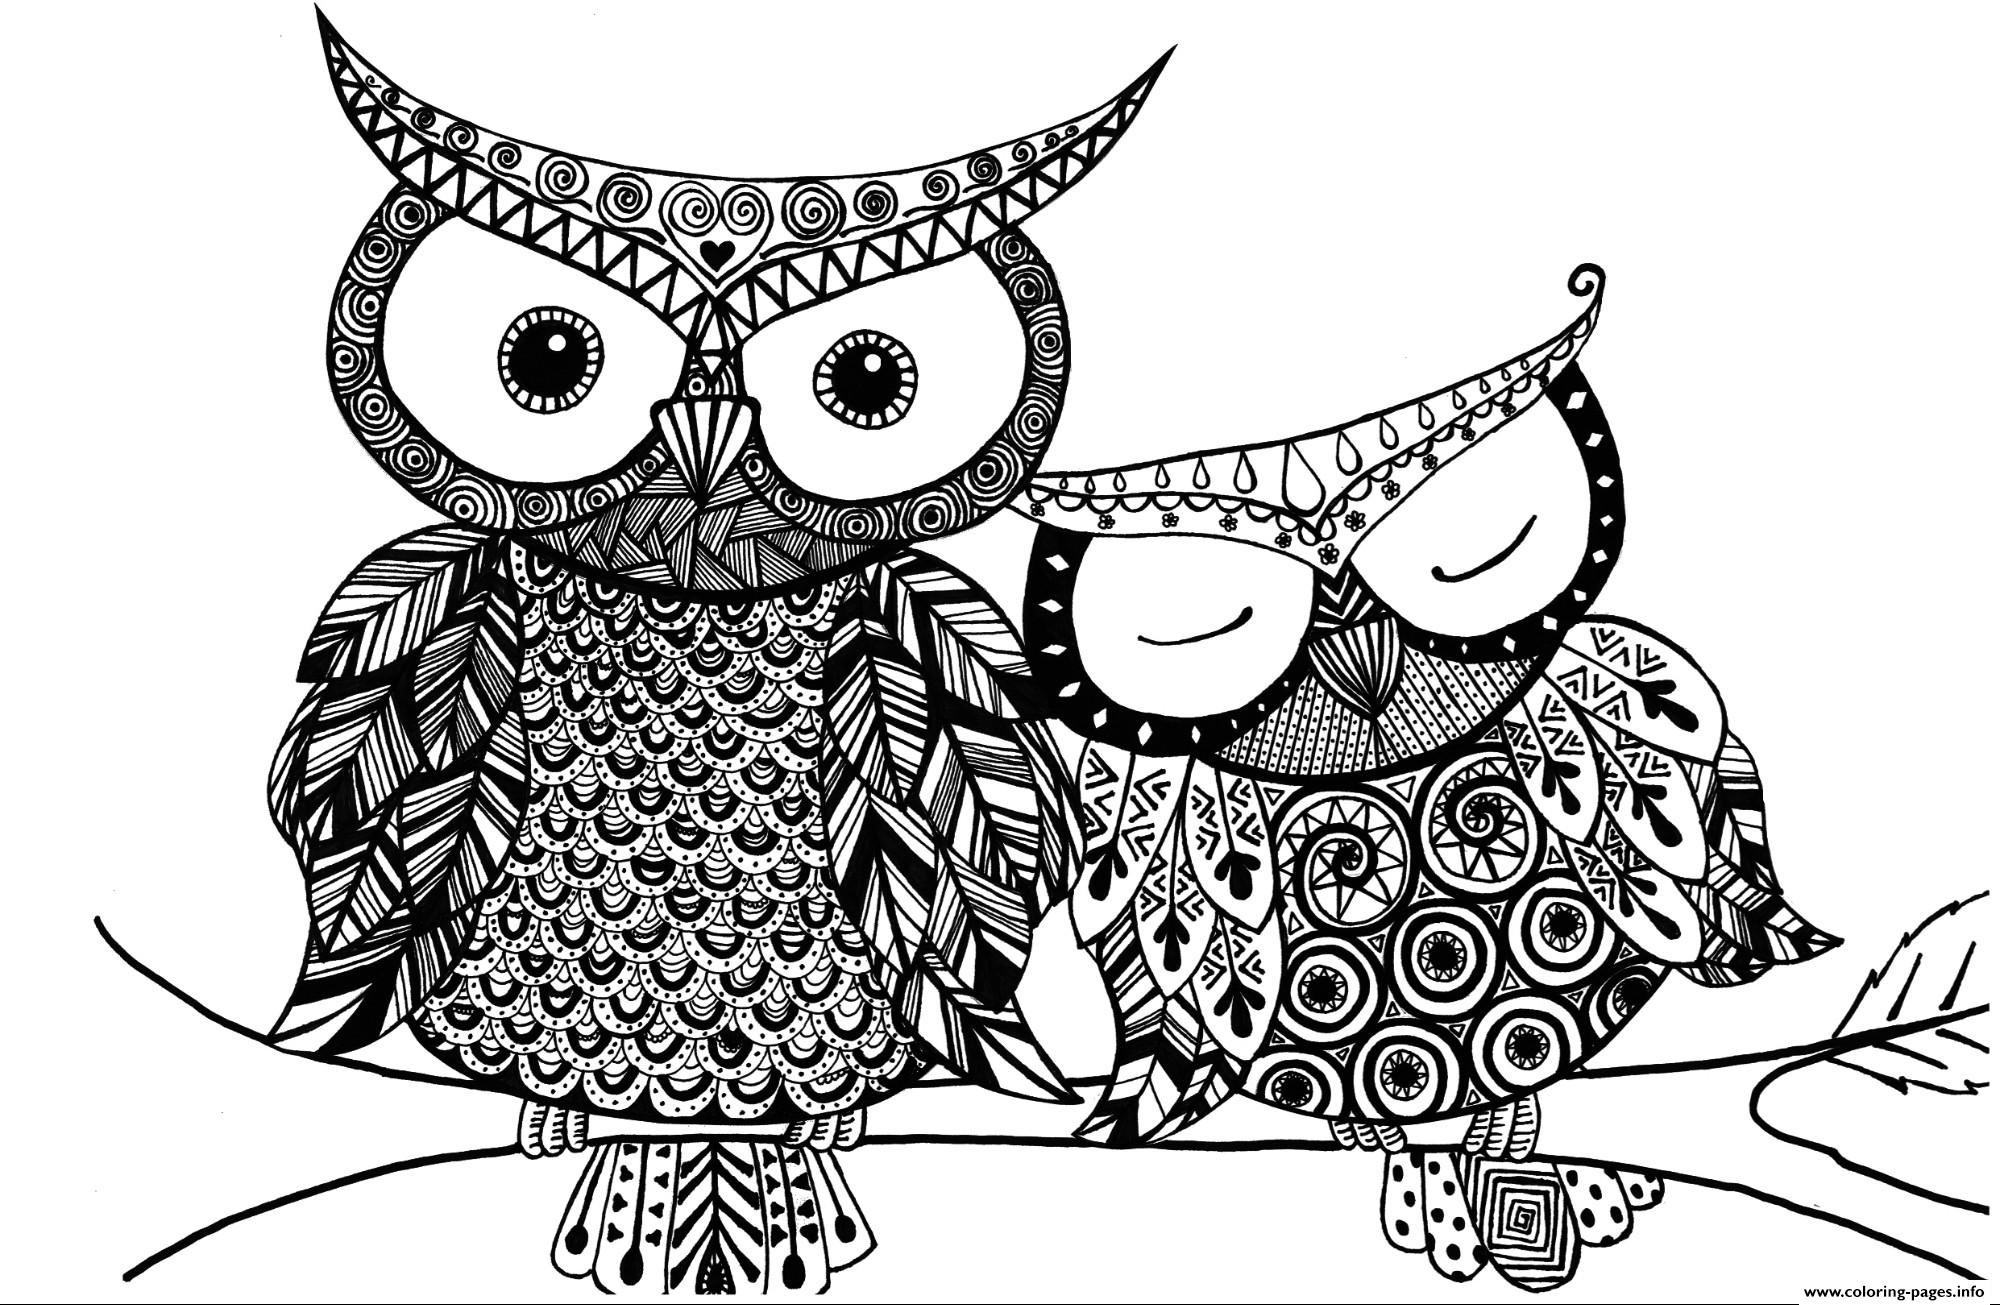 owl coloring pages free printable free owl preschool coloring pages coloring home pages free coloring printable owl